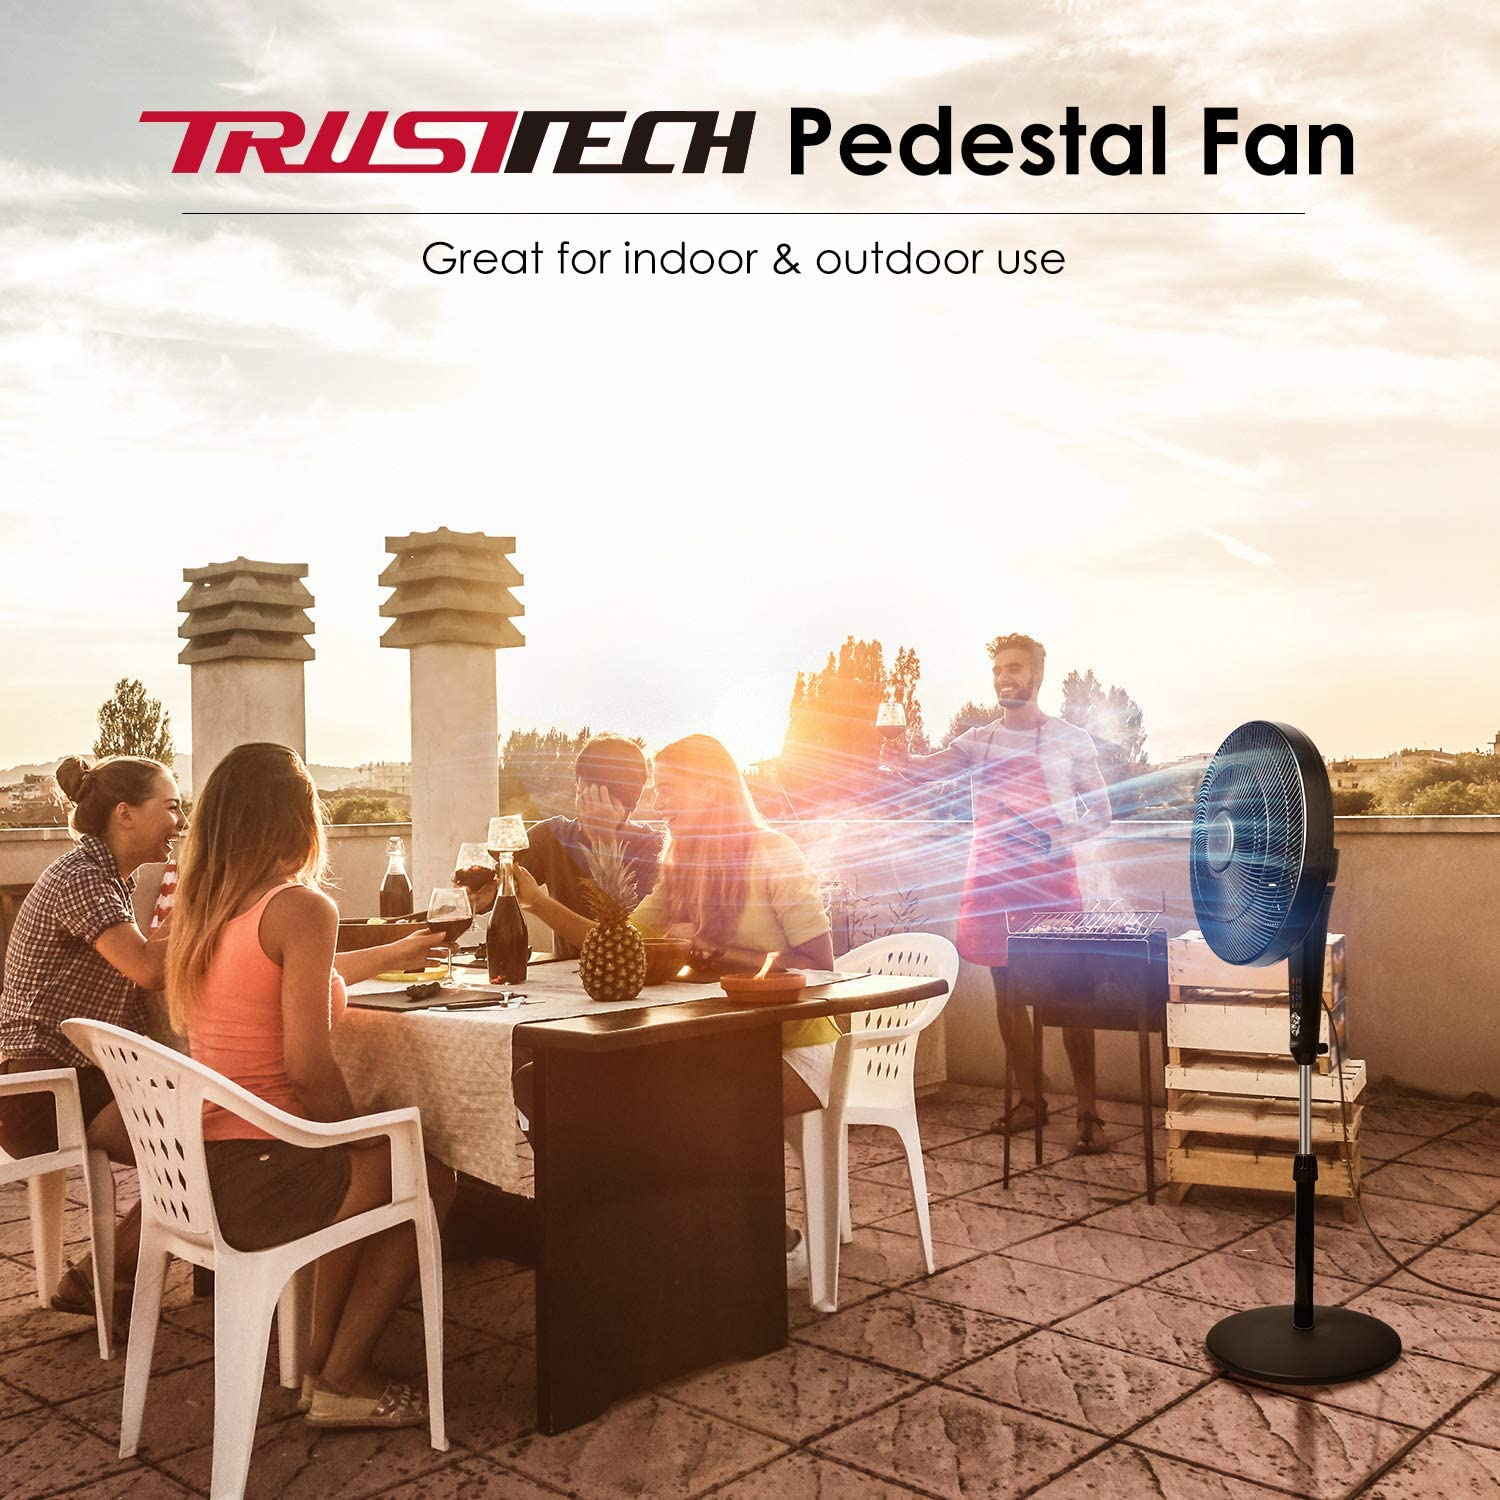 3 Modes Large Stand-Up Fan Adjustable Height /& Tilt Pedestal Fan Bedroom Outdoor Patio Timer Function Oscillating Standing Fan with Remote 2 in 1 Large Fan for Living Room Powerful 4 Speeds